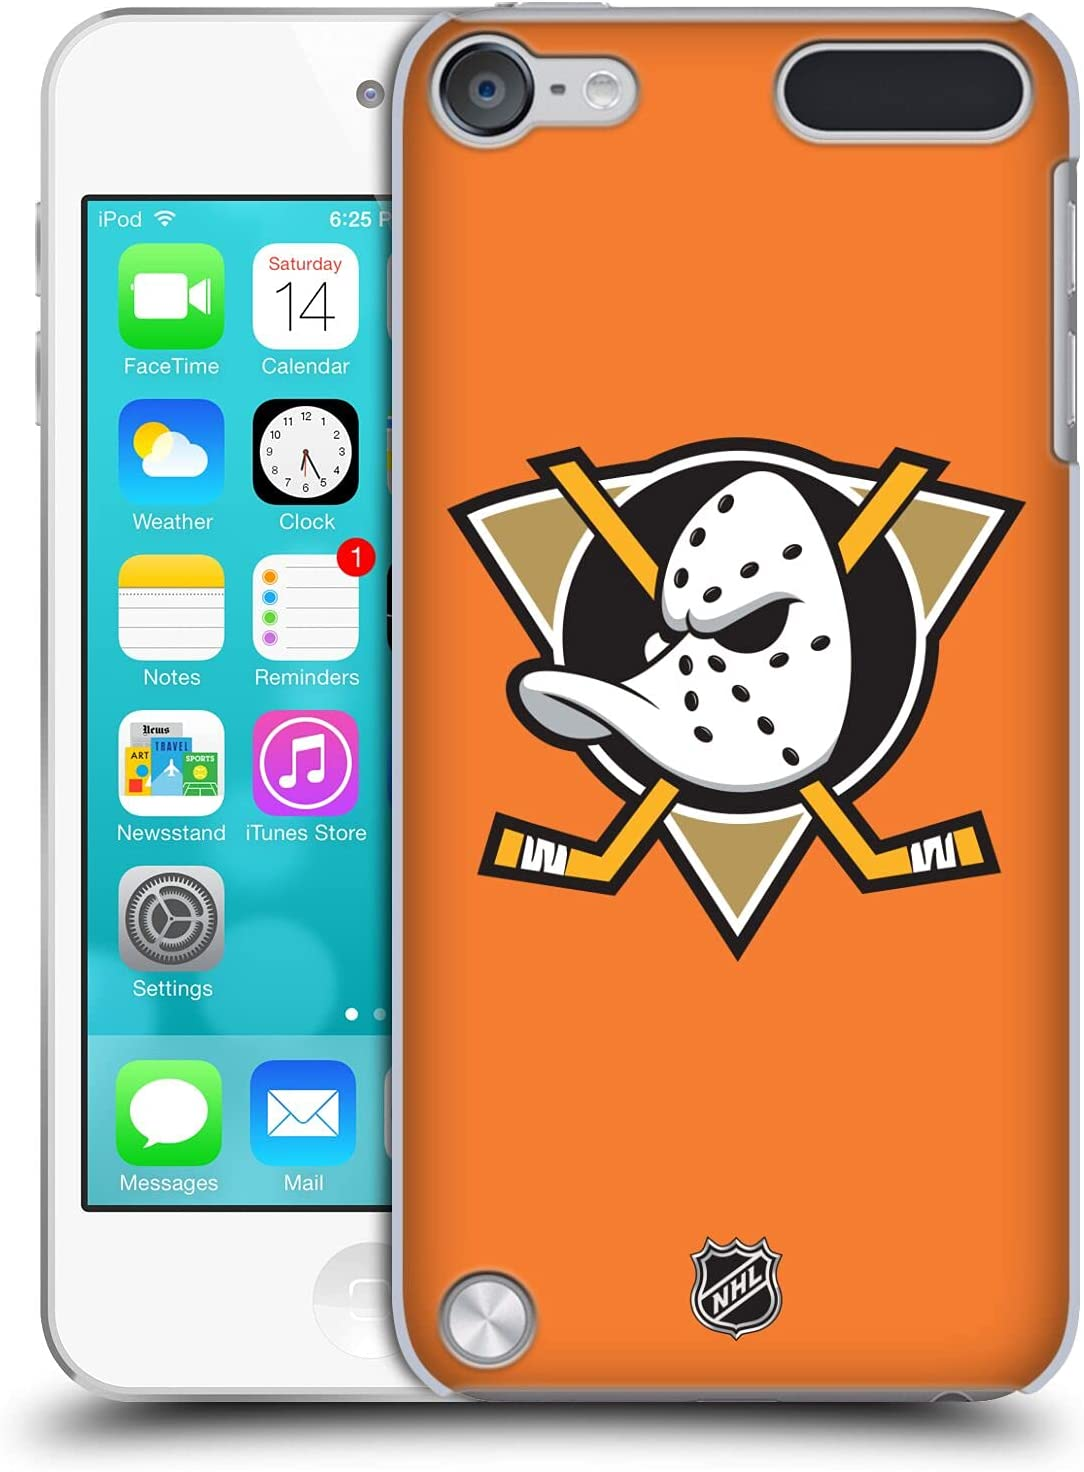 Head Case Designs Officially Licensed NHL Plain Anaheim Ducks Hard Back Case Compatible with Apple iPod Touch 5G 5th Gen